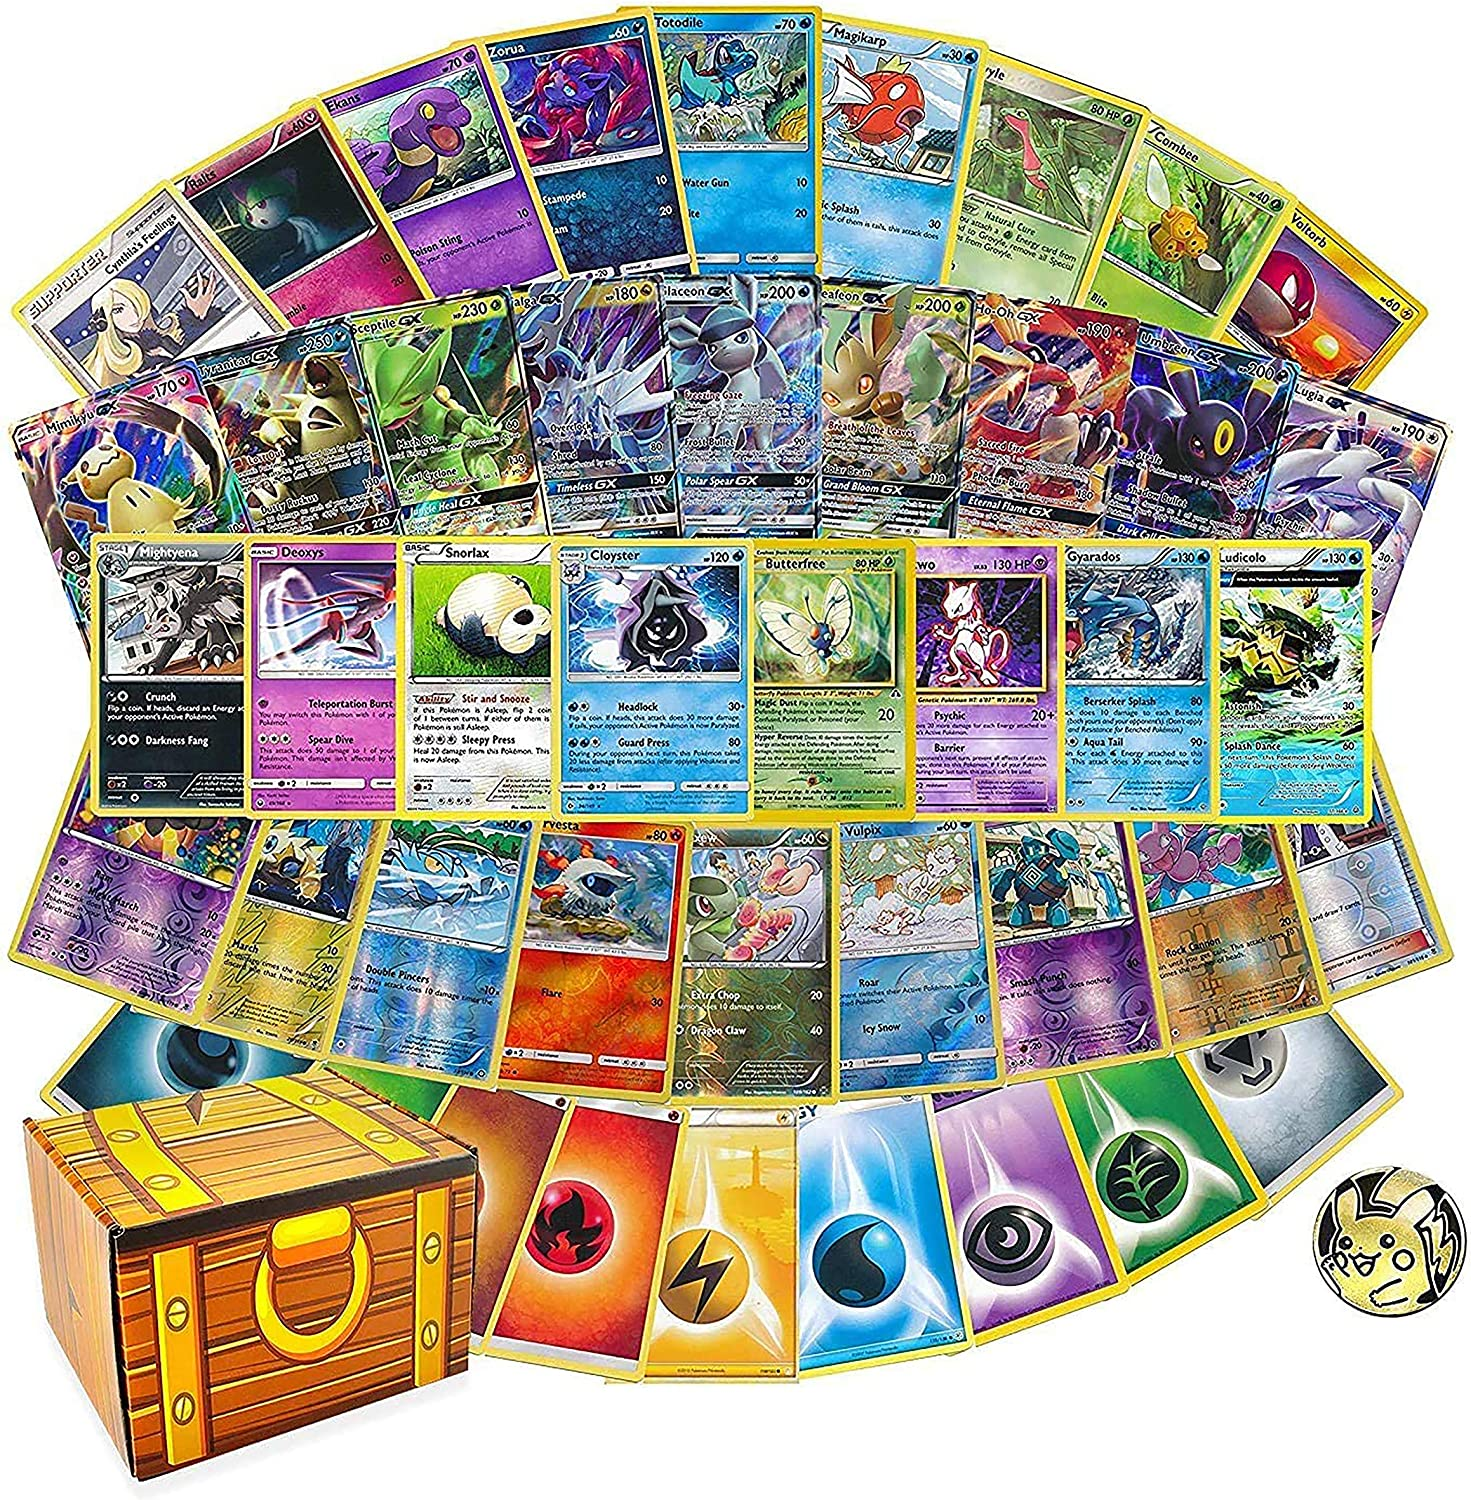 100 Assorted Cards: Features 1 GX, Rares, Holos, and 45 Bonus Energy Cards - All Cards are Authentic - Includes Golden Groundhog 50 Cards Capacity Deck Box!: Toys & Games